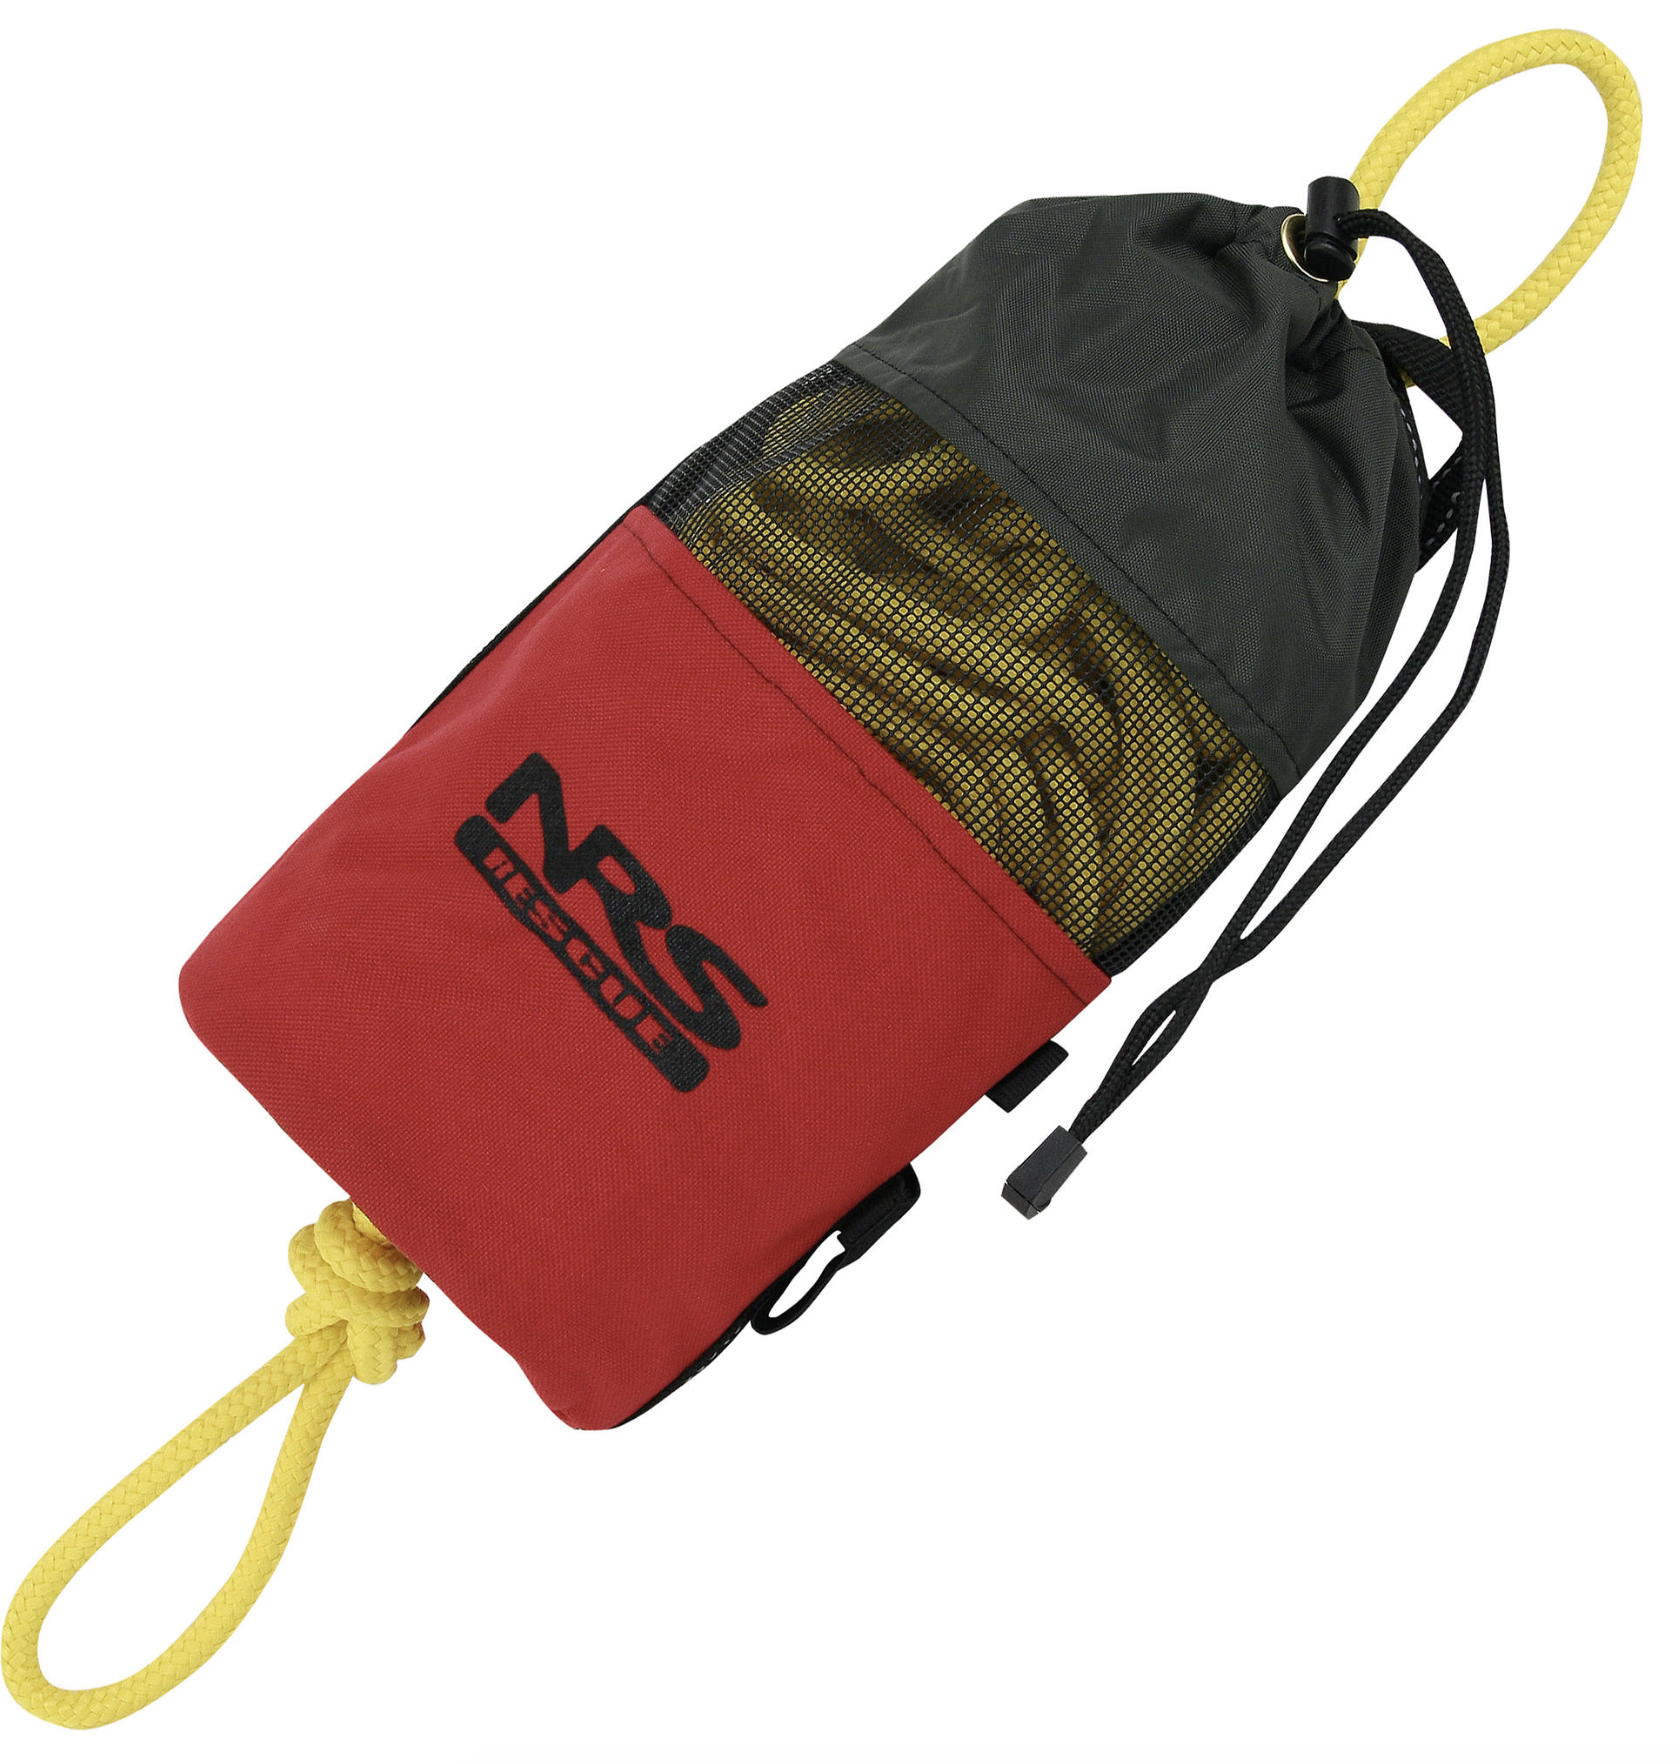 Safety & Rescue: Standard Rescue Throw Bag by NRS - Image 4812